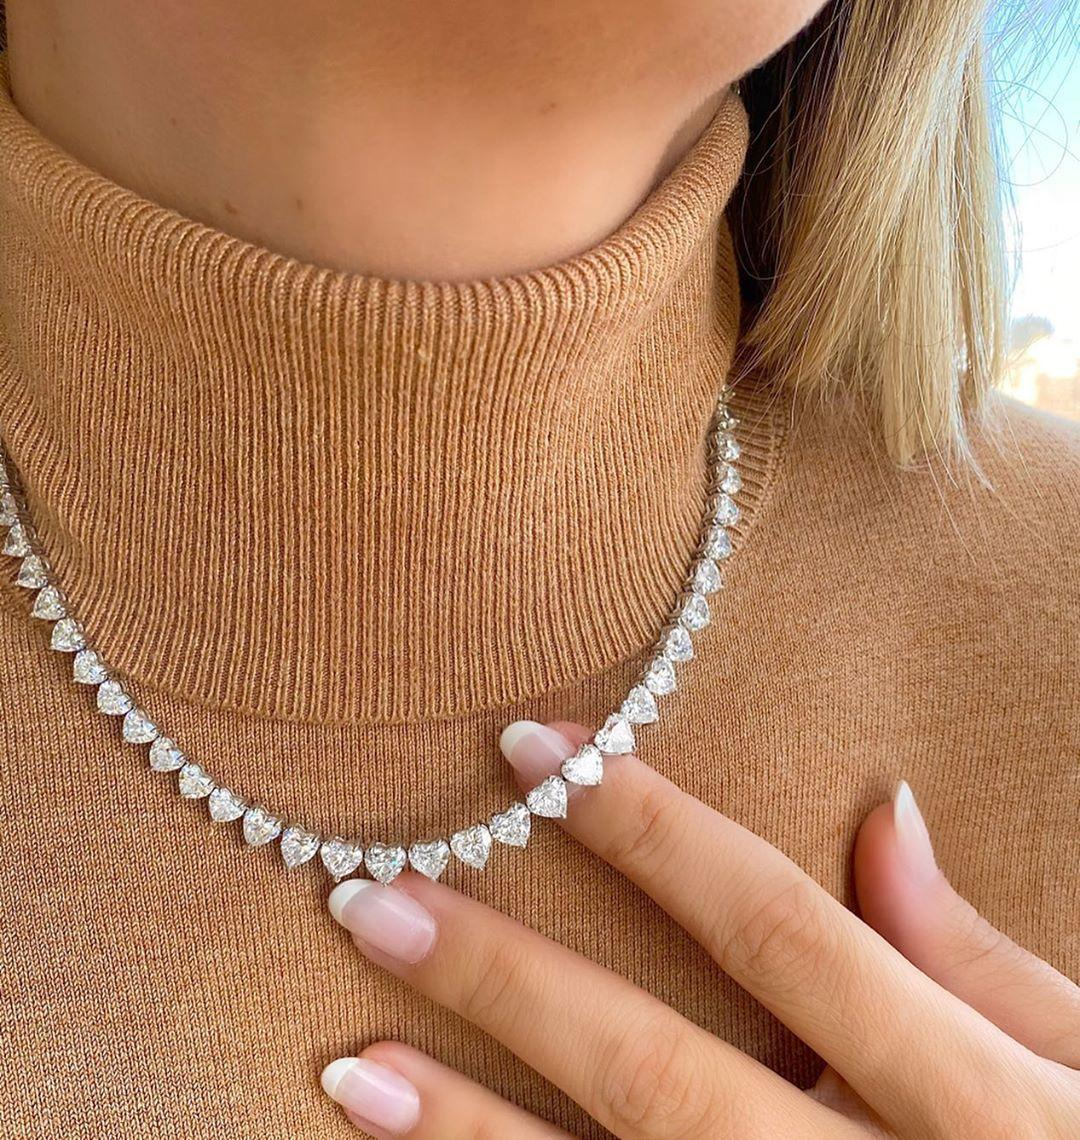 High quality 5A shape CZ iced out bling heart tennis necklace for women girlfriend valentine's gift fashion jewelry Q1121